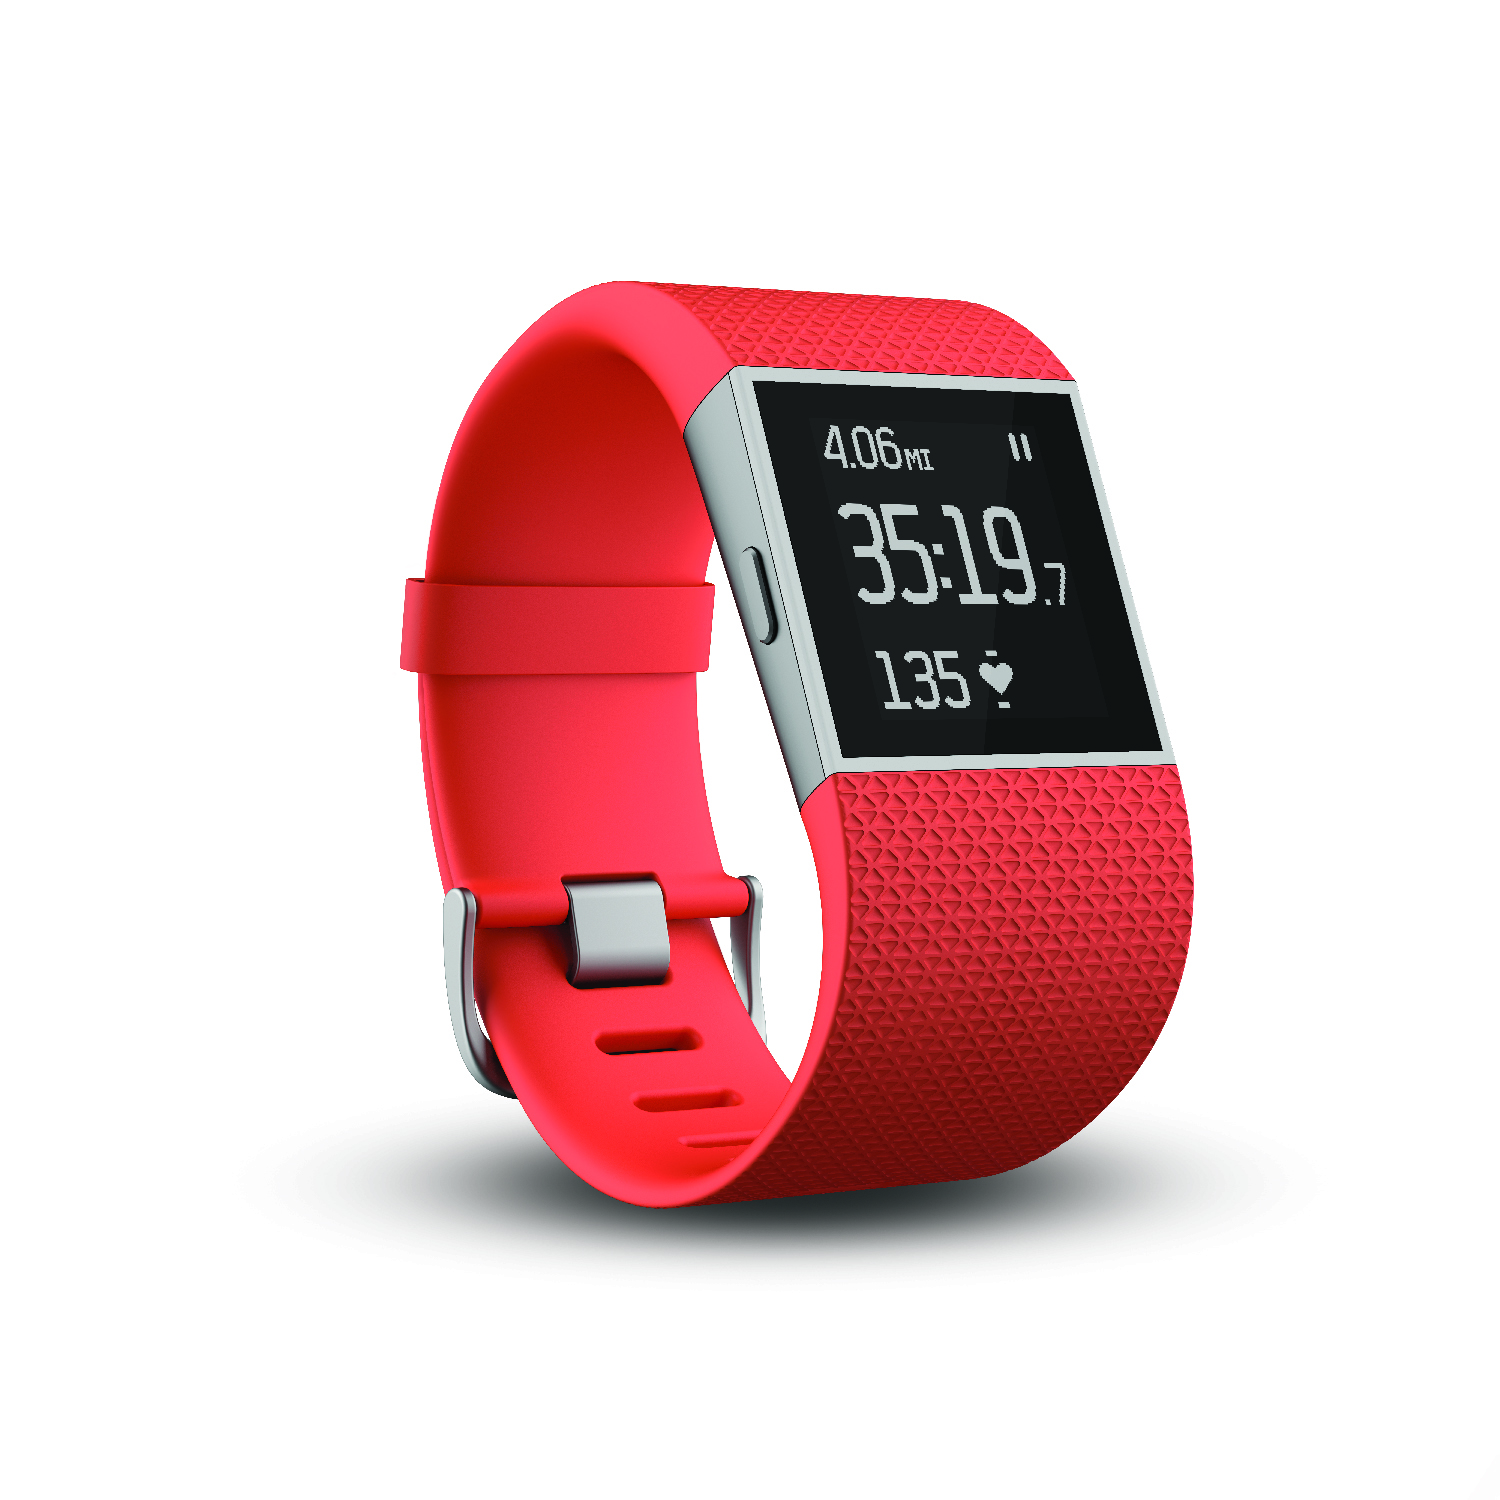 Wearable Steps Distance Activity Burned Calories Sleep Analysis Pulse (HR) Floors Climbed Fitbit Surge